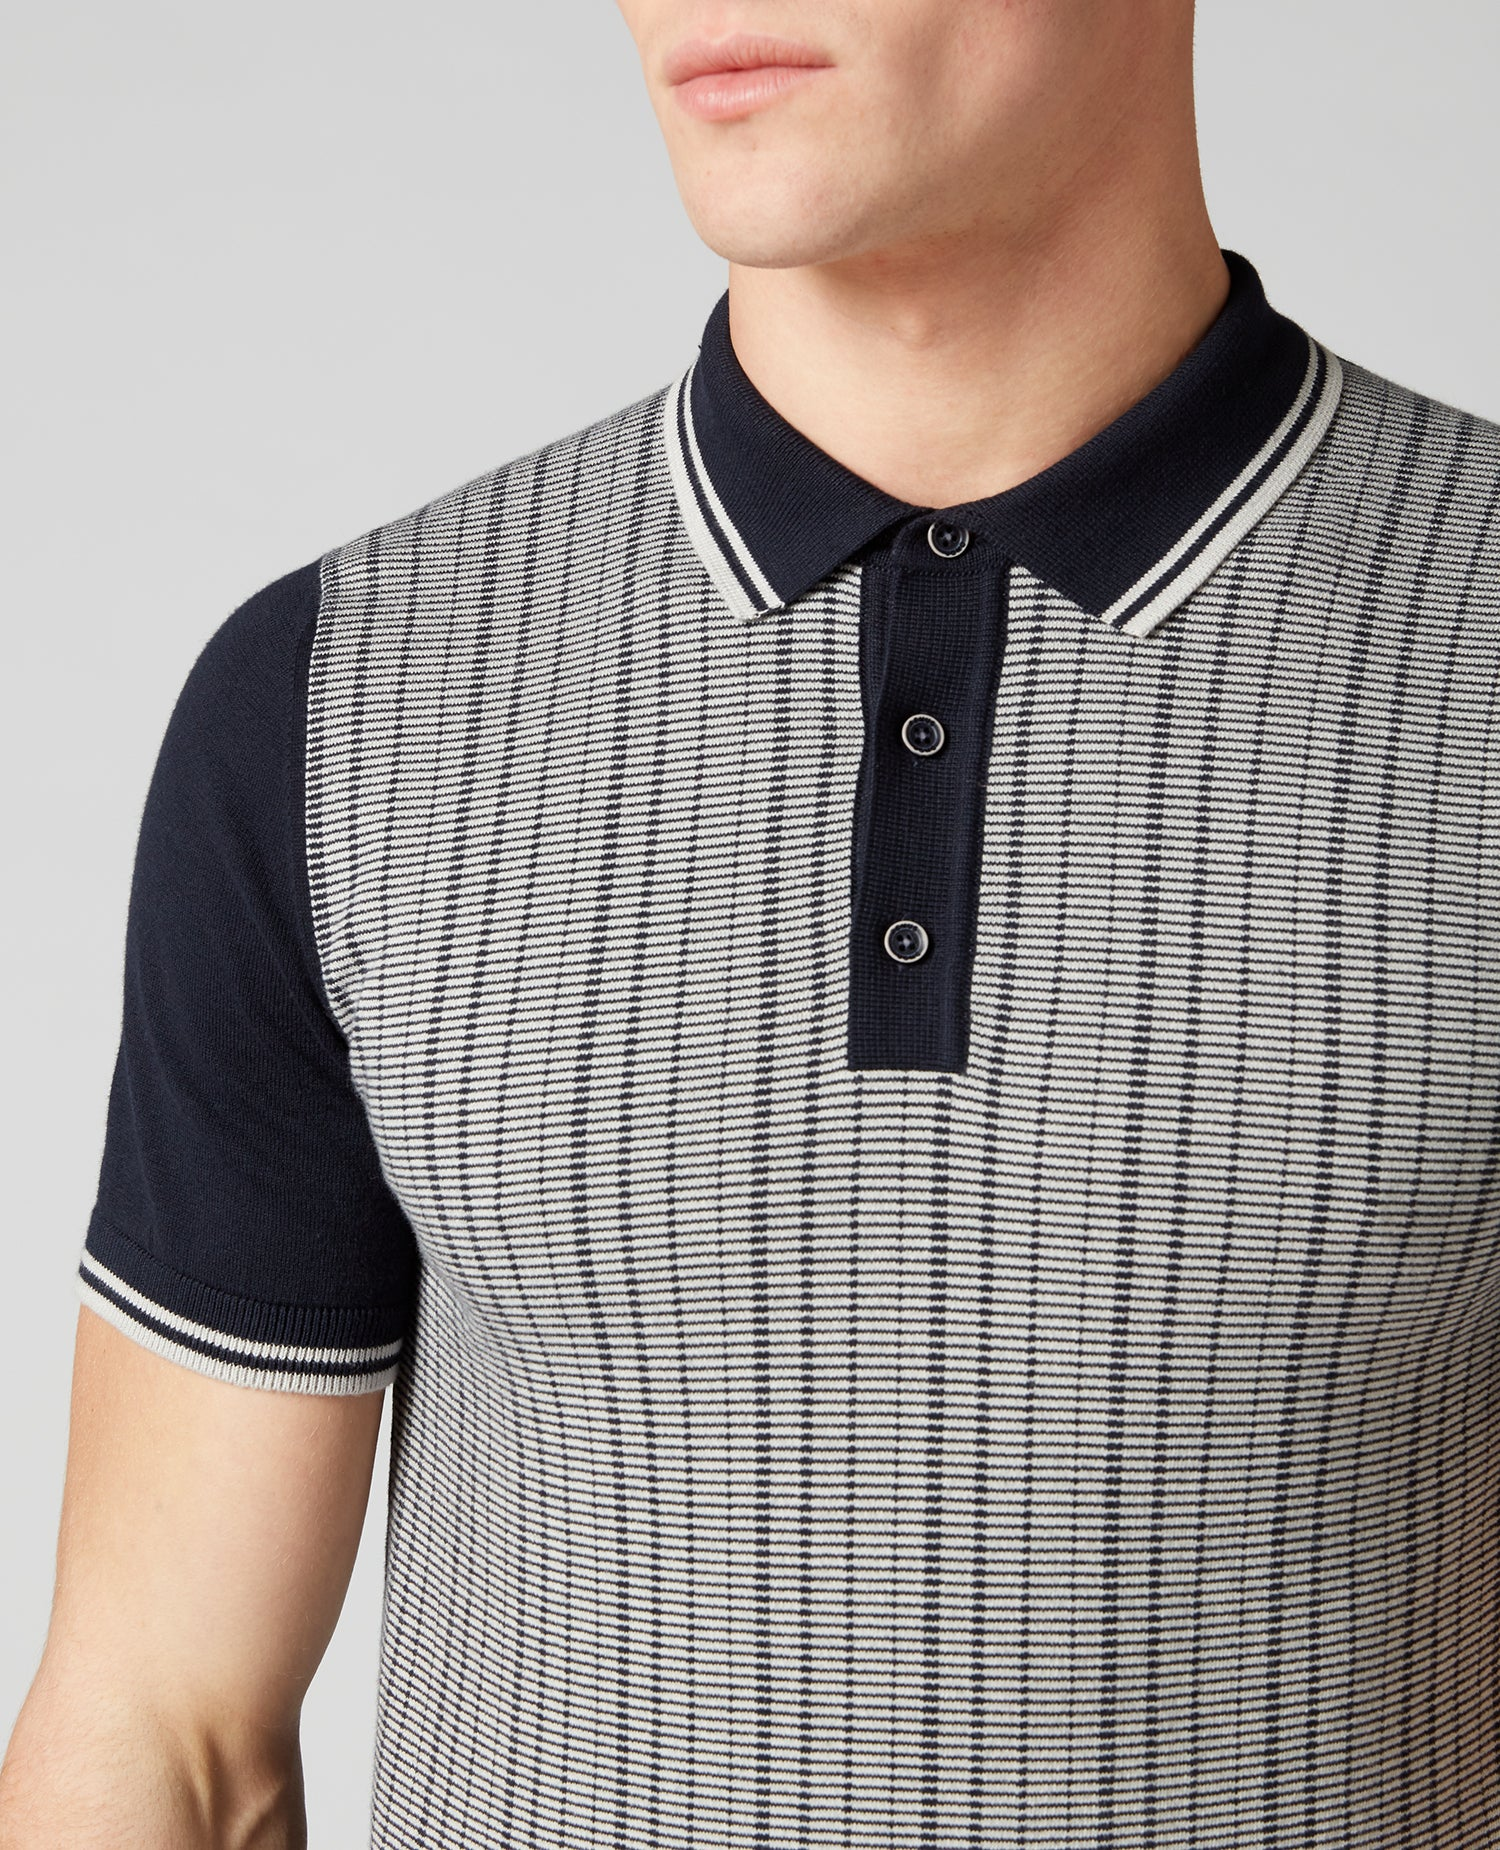 Grey & Navy Notched Stripe Knitted Polo Shirt